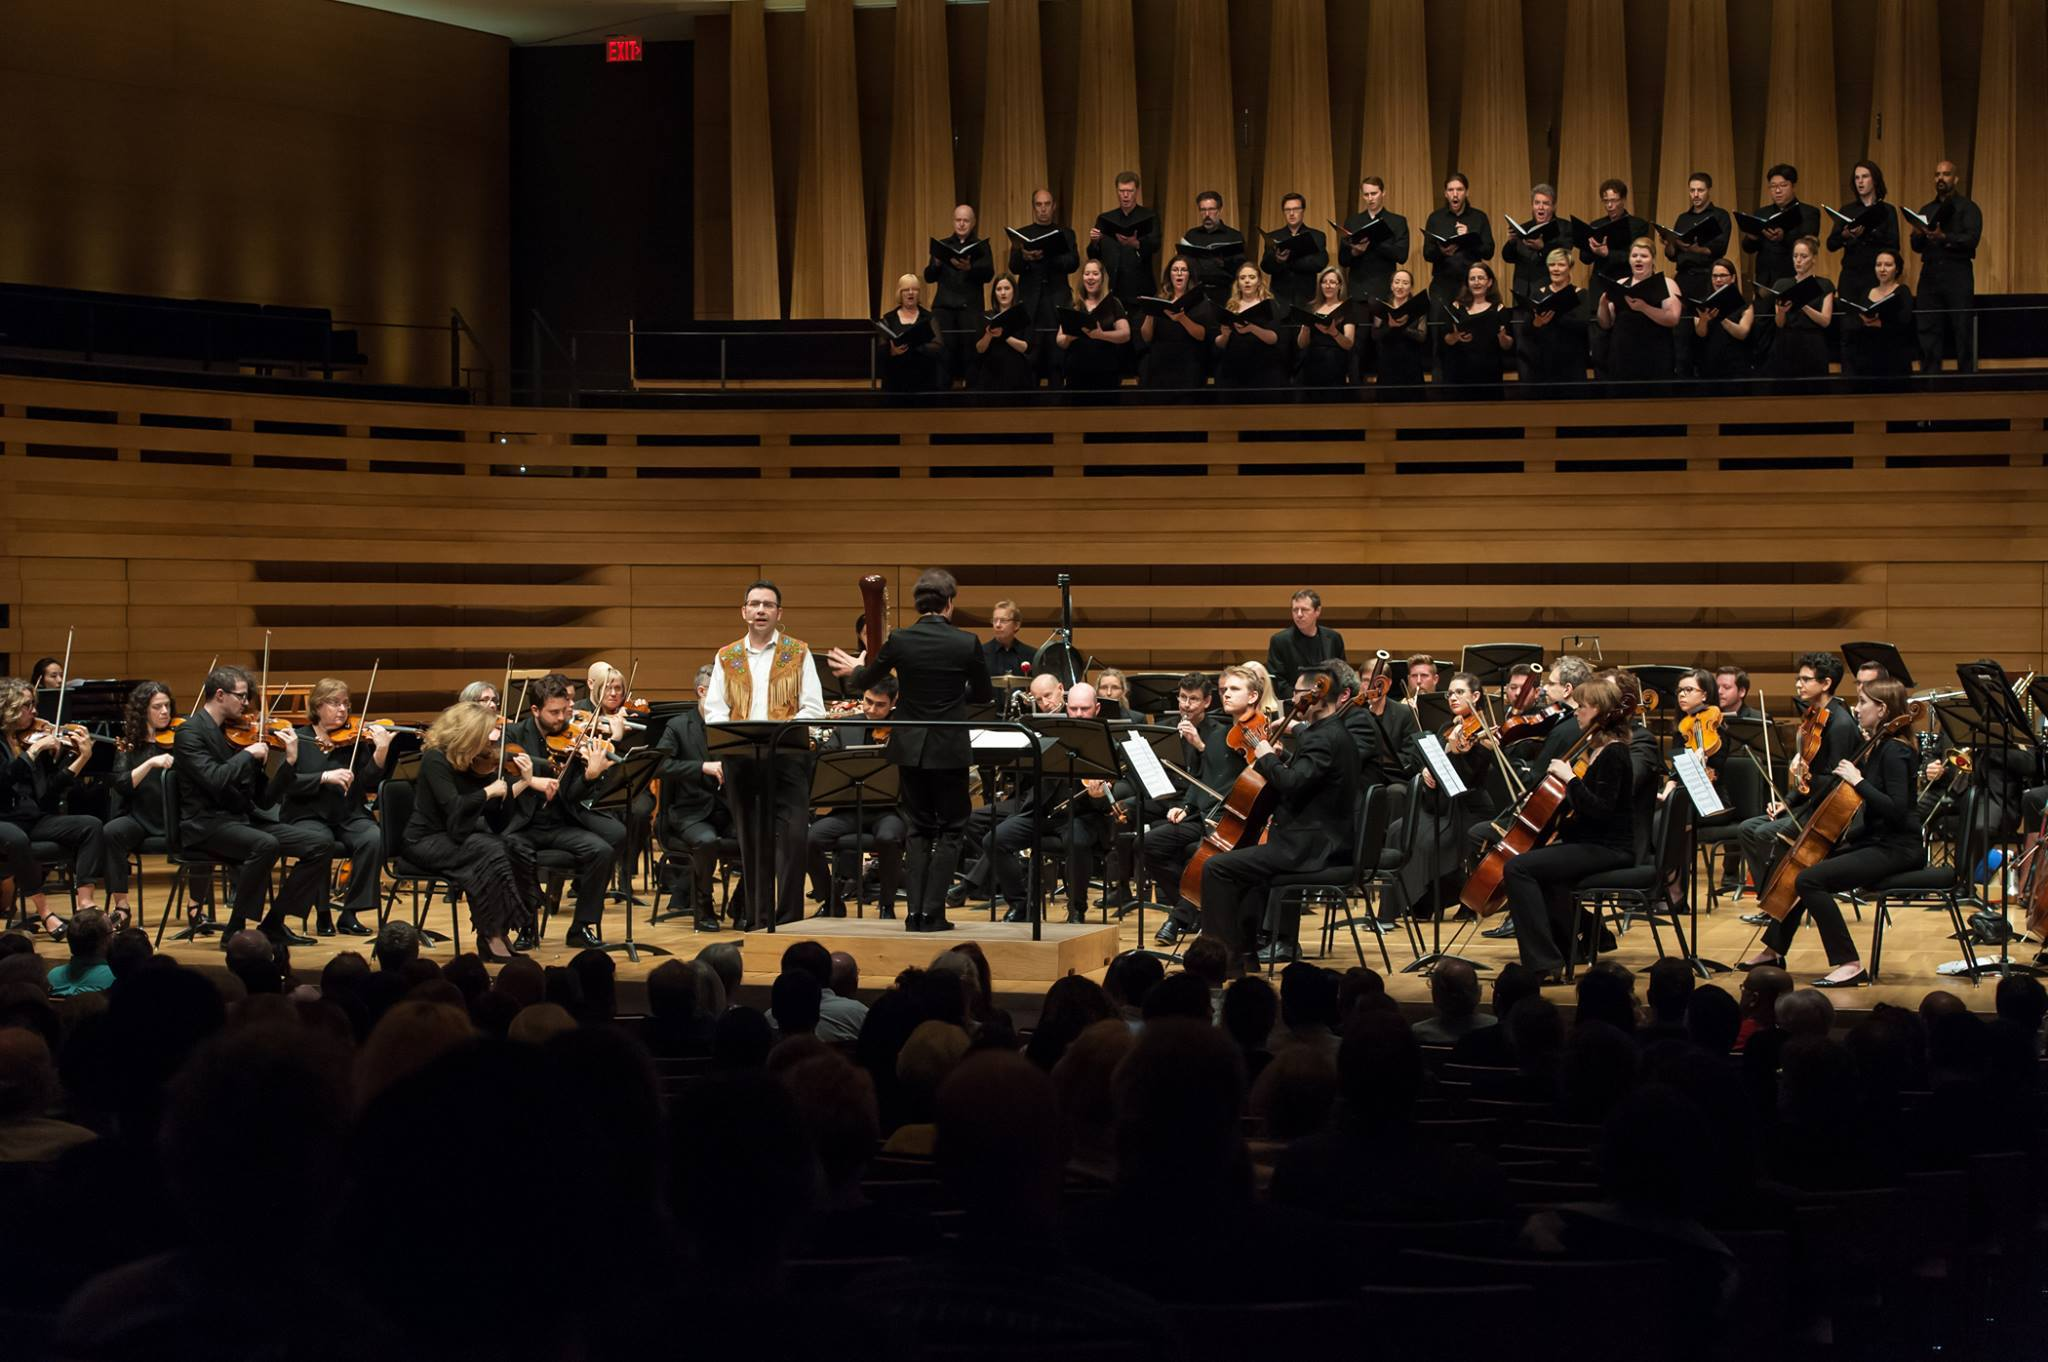 Author and Narrator Richard Van Camp in performance of Naka (Northern Lights) with the Canadian Opera Company Orchestra and Elmer Eisler Singers conducted by Johannes Debus at the 21C Music Festival